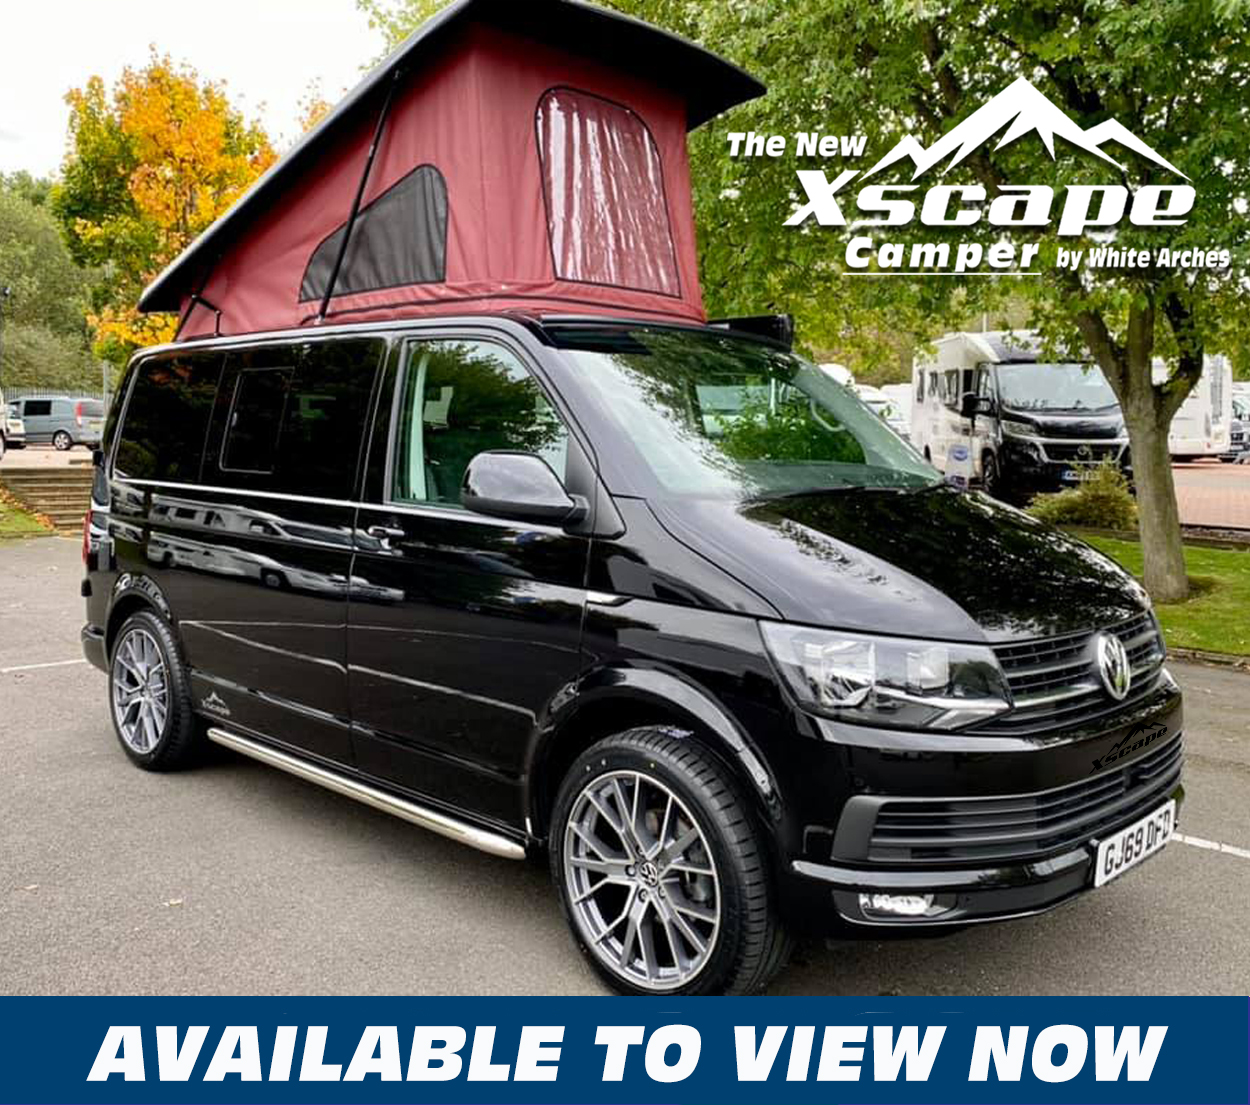 Xscape Camper BLACK Thumb v3 ViewNOW